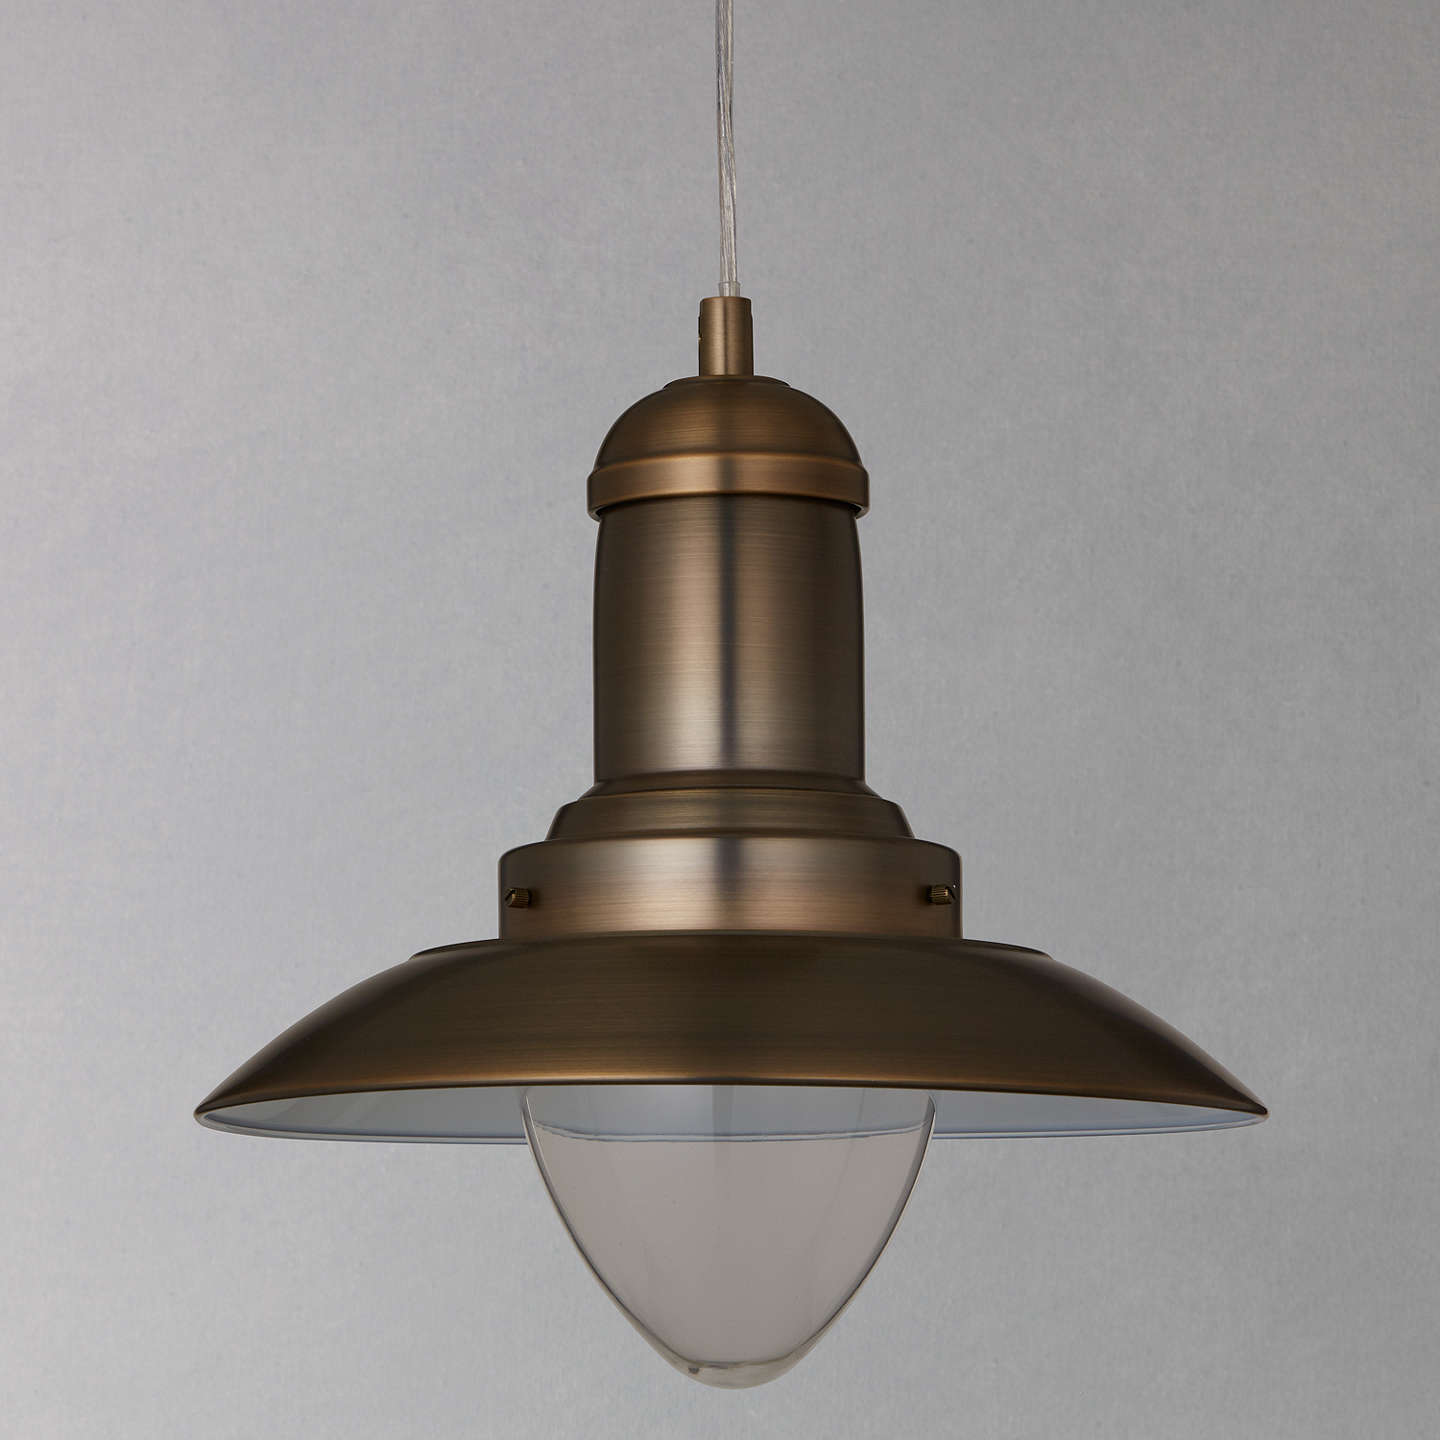 John lewis barrington pendant ceiling light satin brass at john lewis buyjohn lewis barrington pendant ceiling light satin brass online at johnlewis mozeypictures